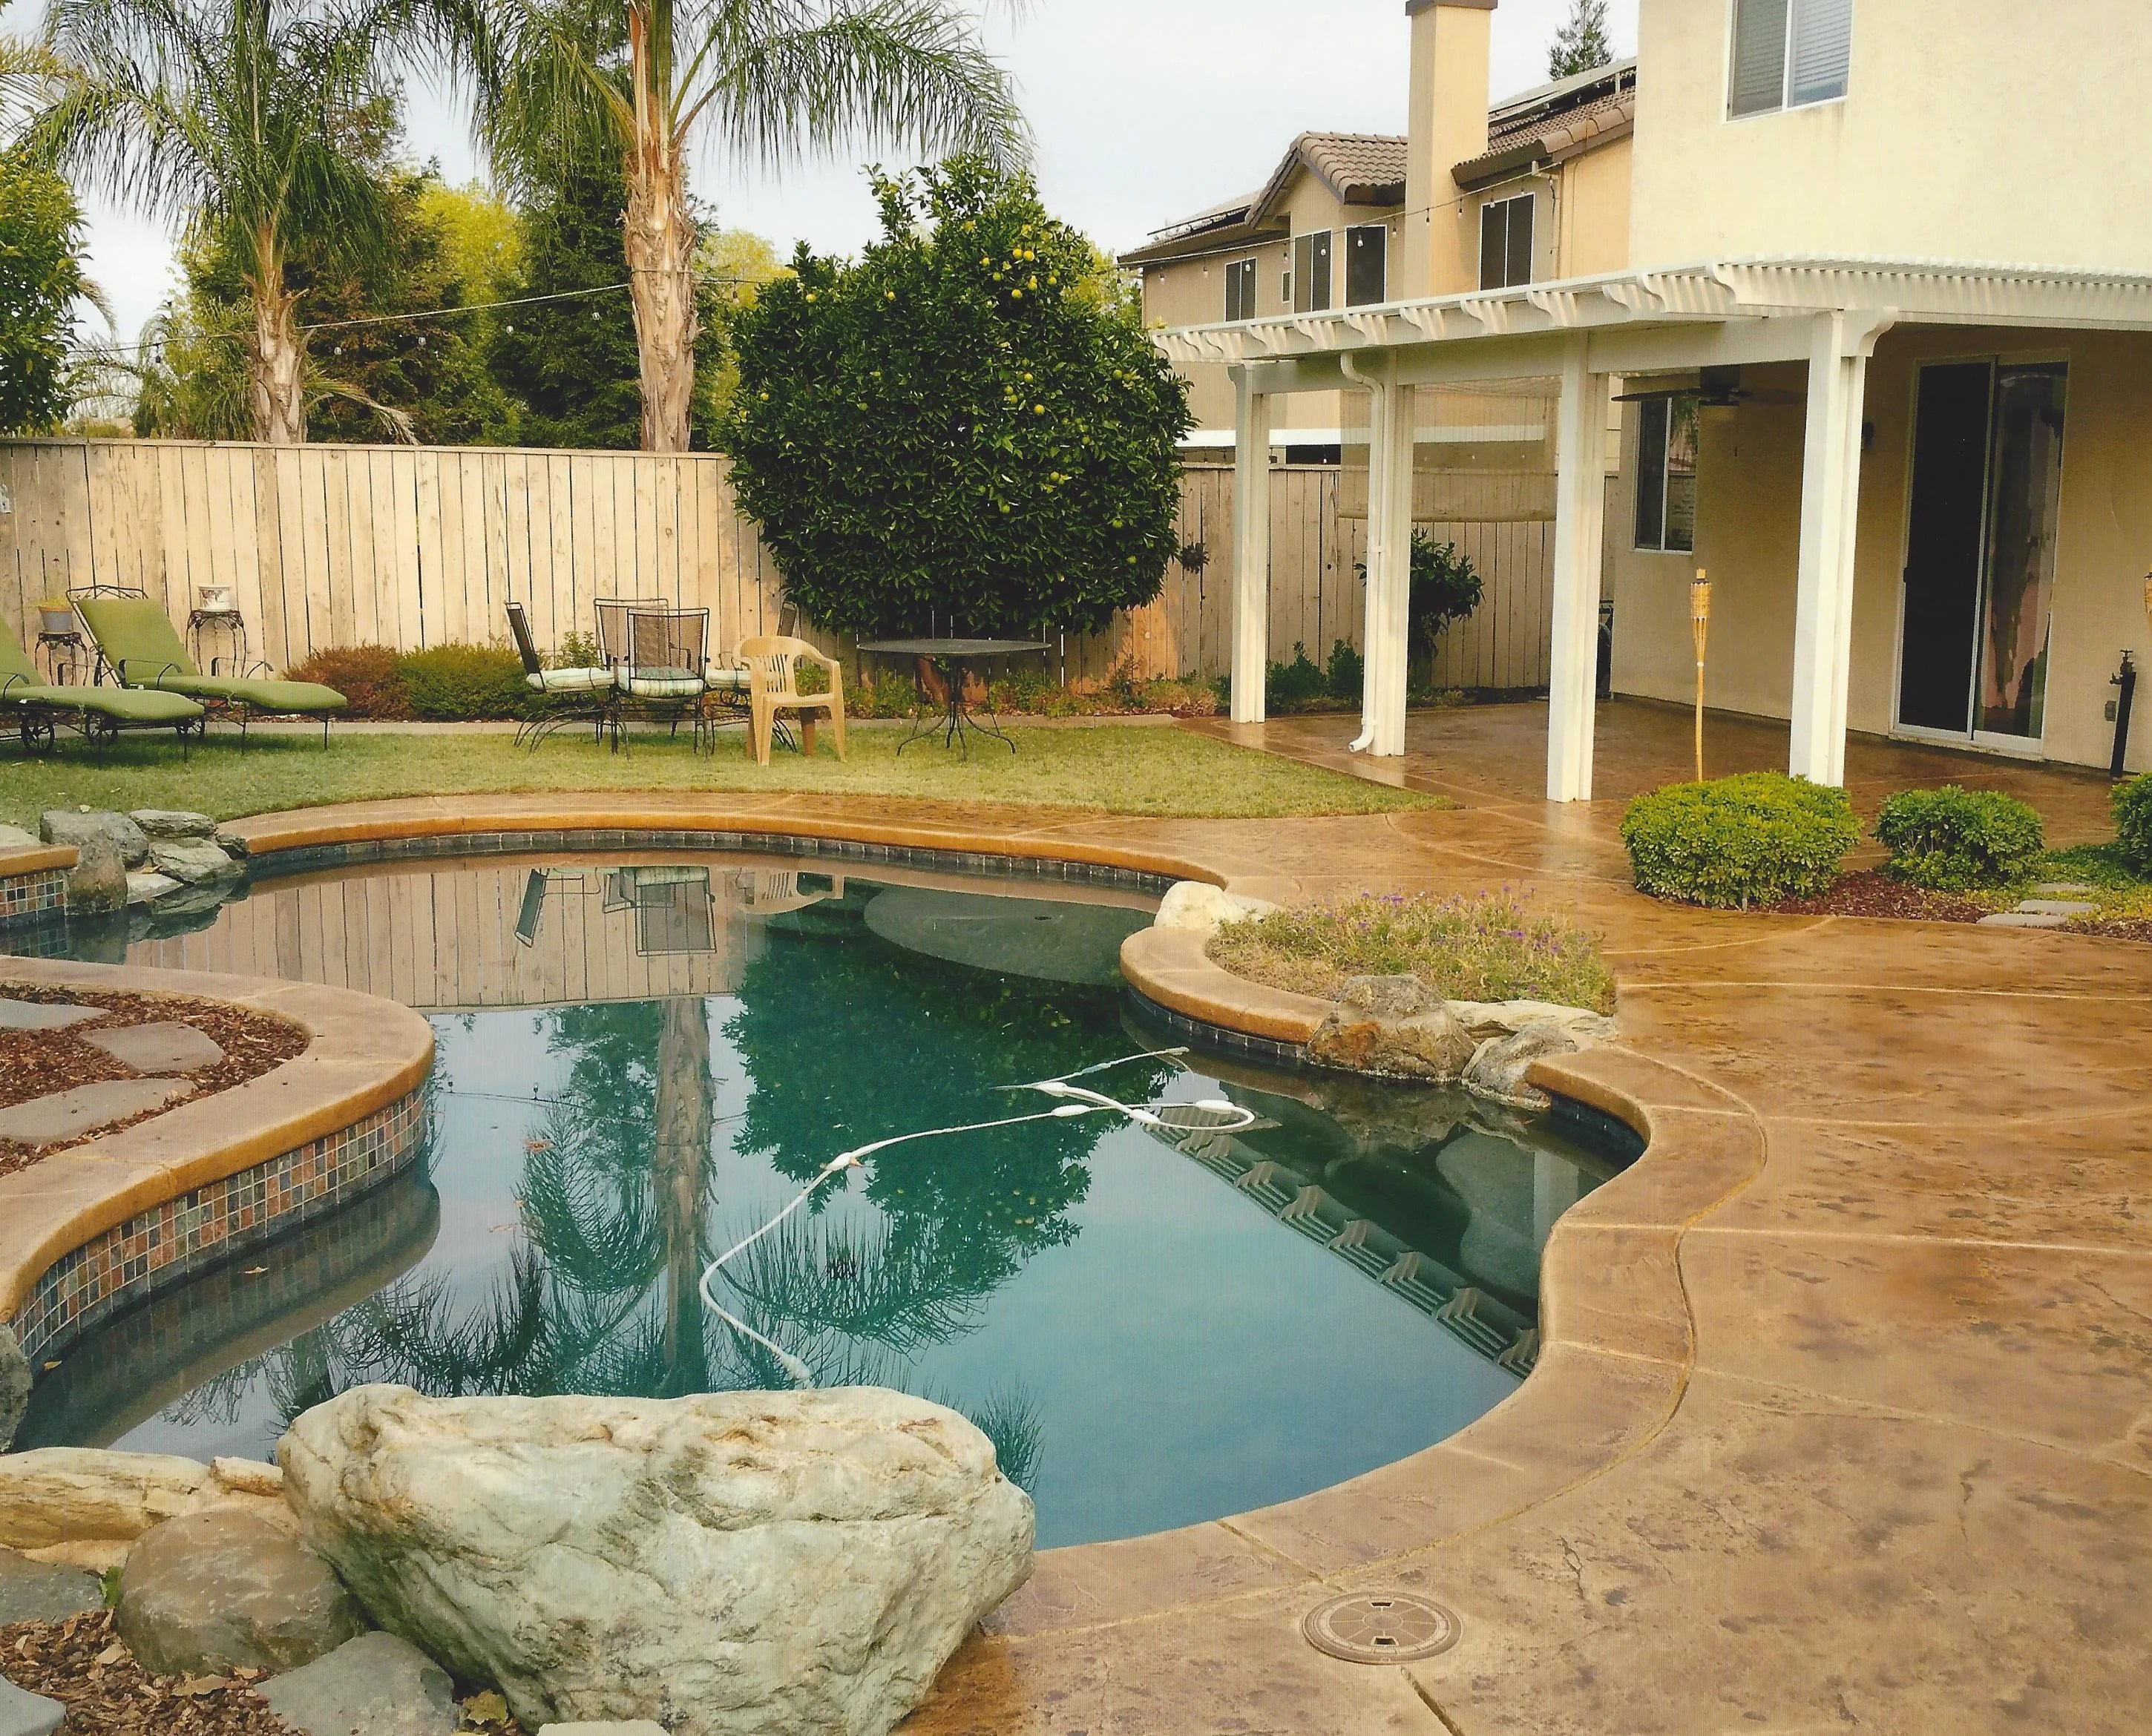 Pool Deck Ideas St Louis, MO | Decorative Concrete Resurfacing on Pool Deck Patio Ideas id=16085